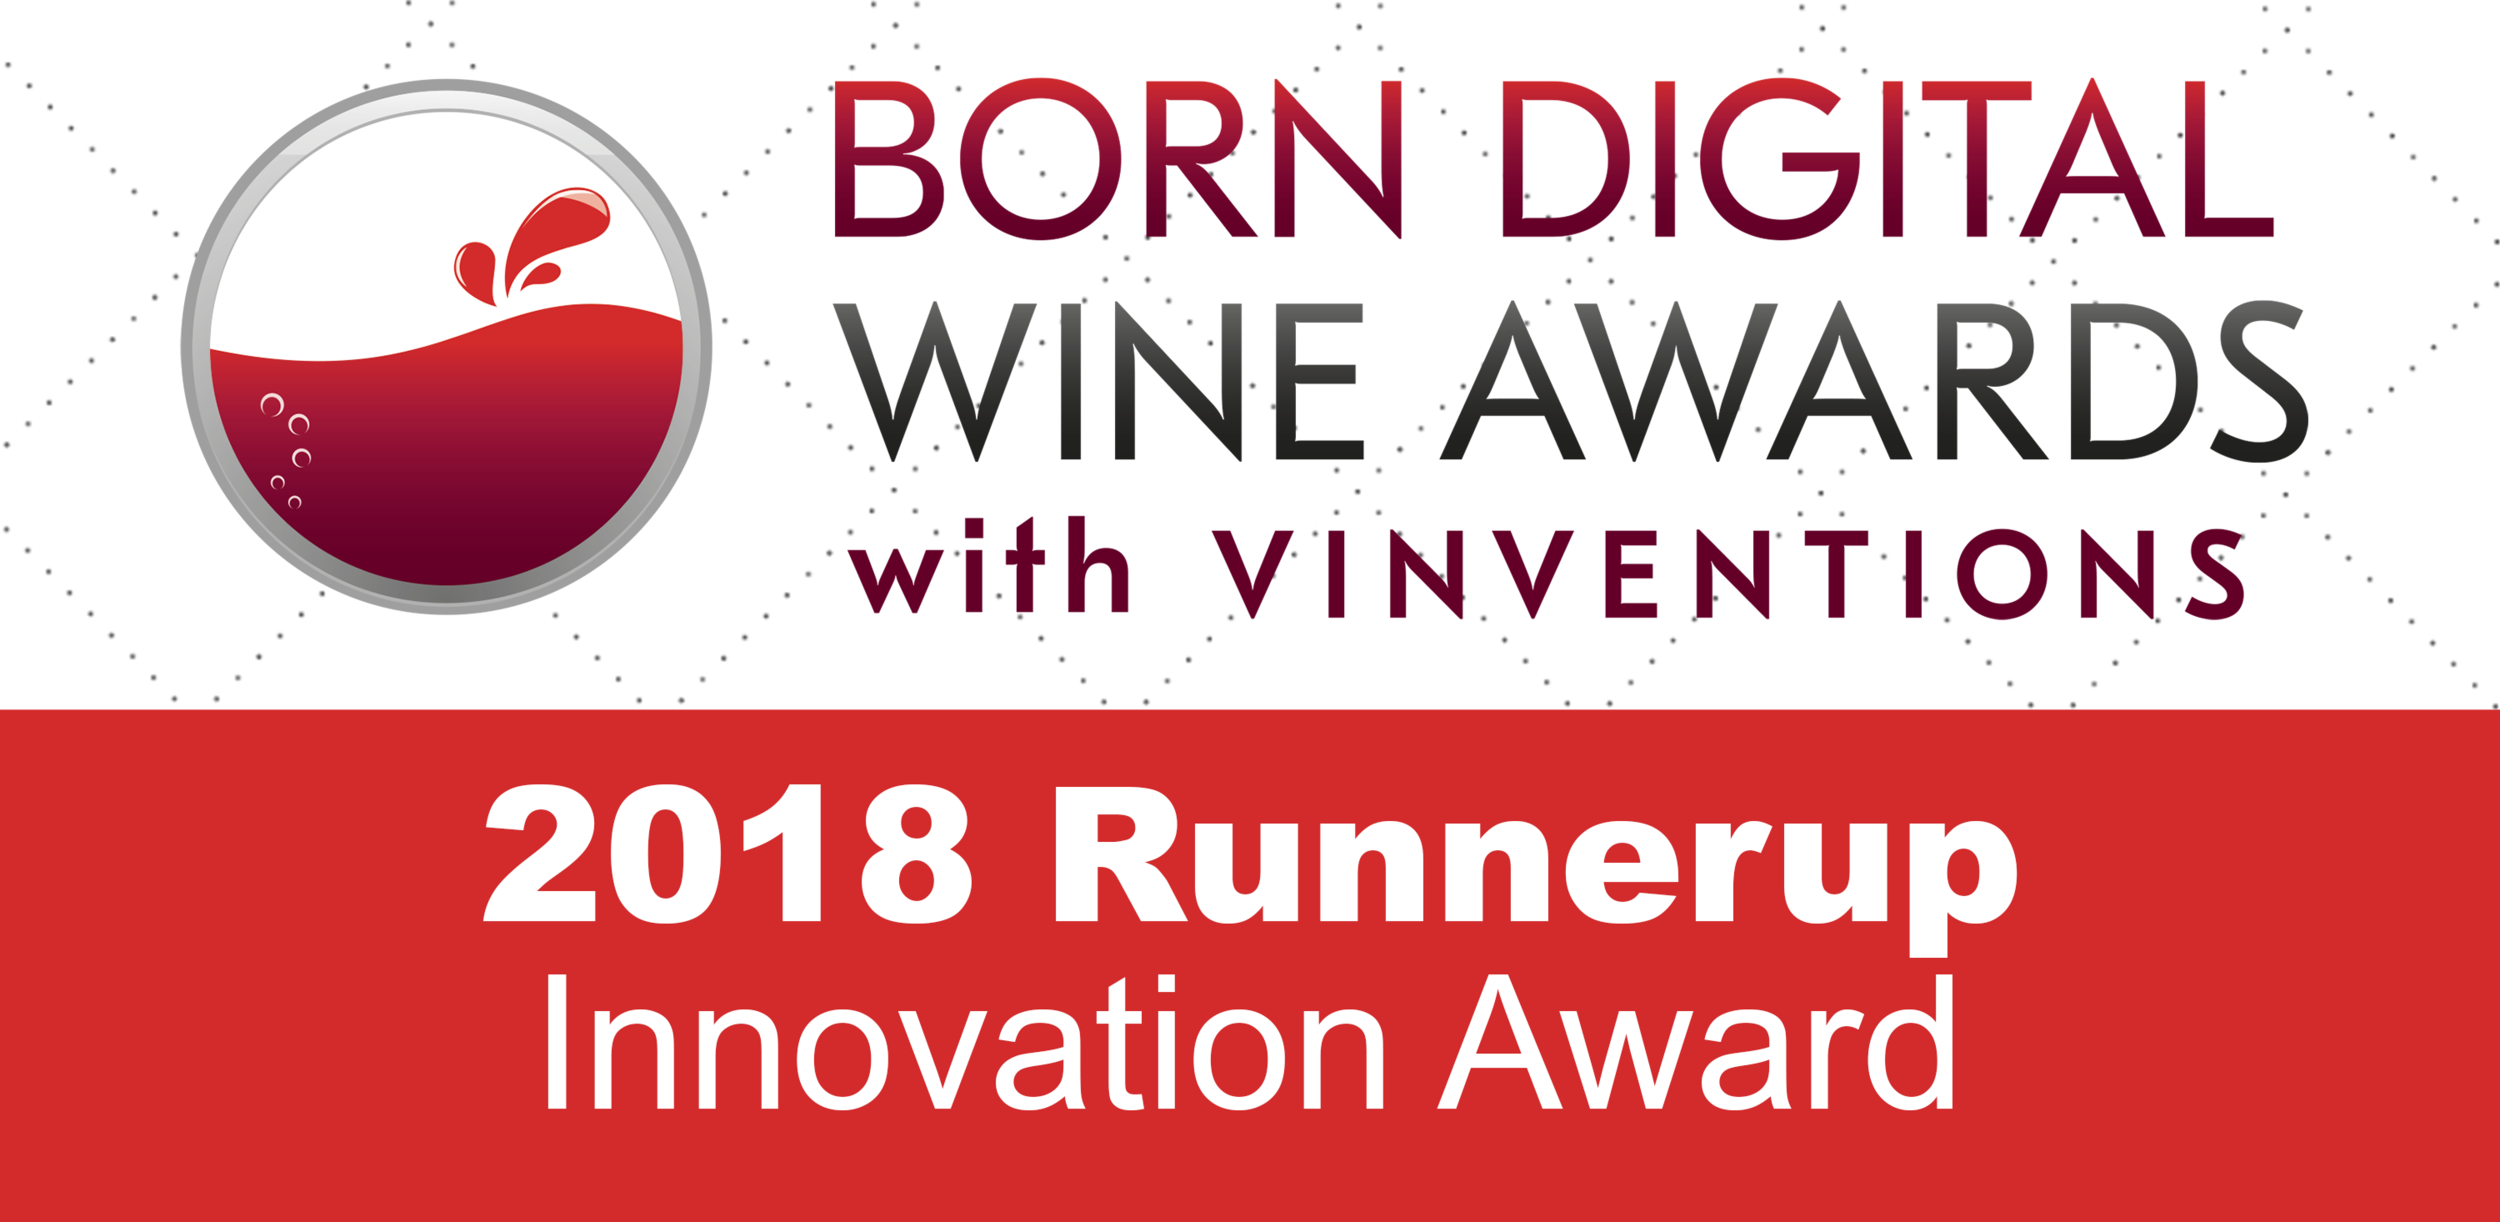 #abalancedglass #rebeccahopkins #borndigitalwine #wellness #alcohol #innovation